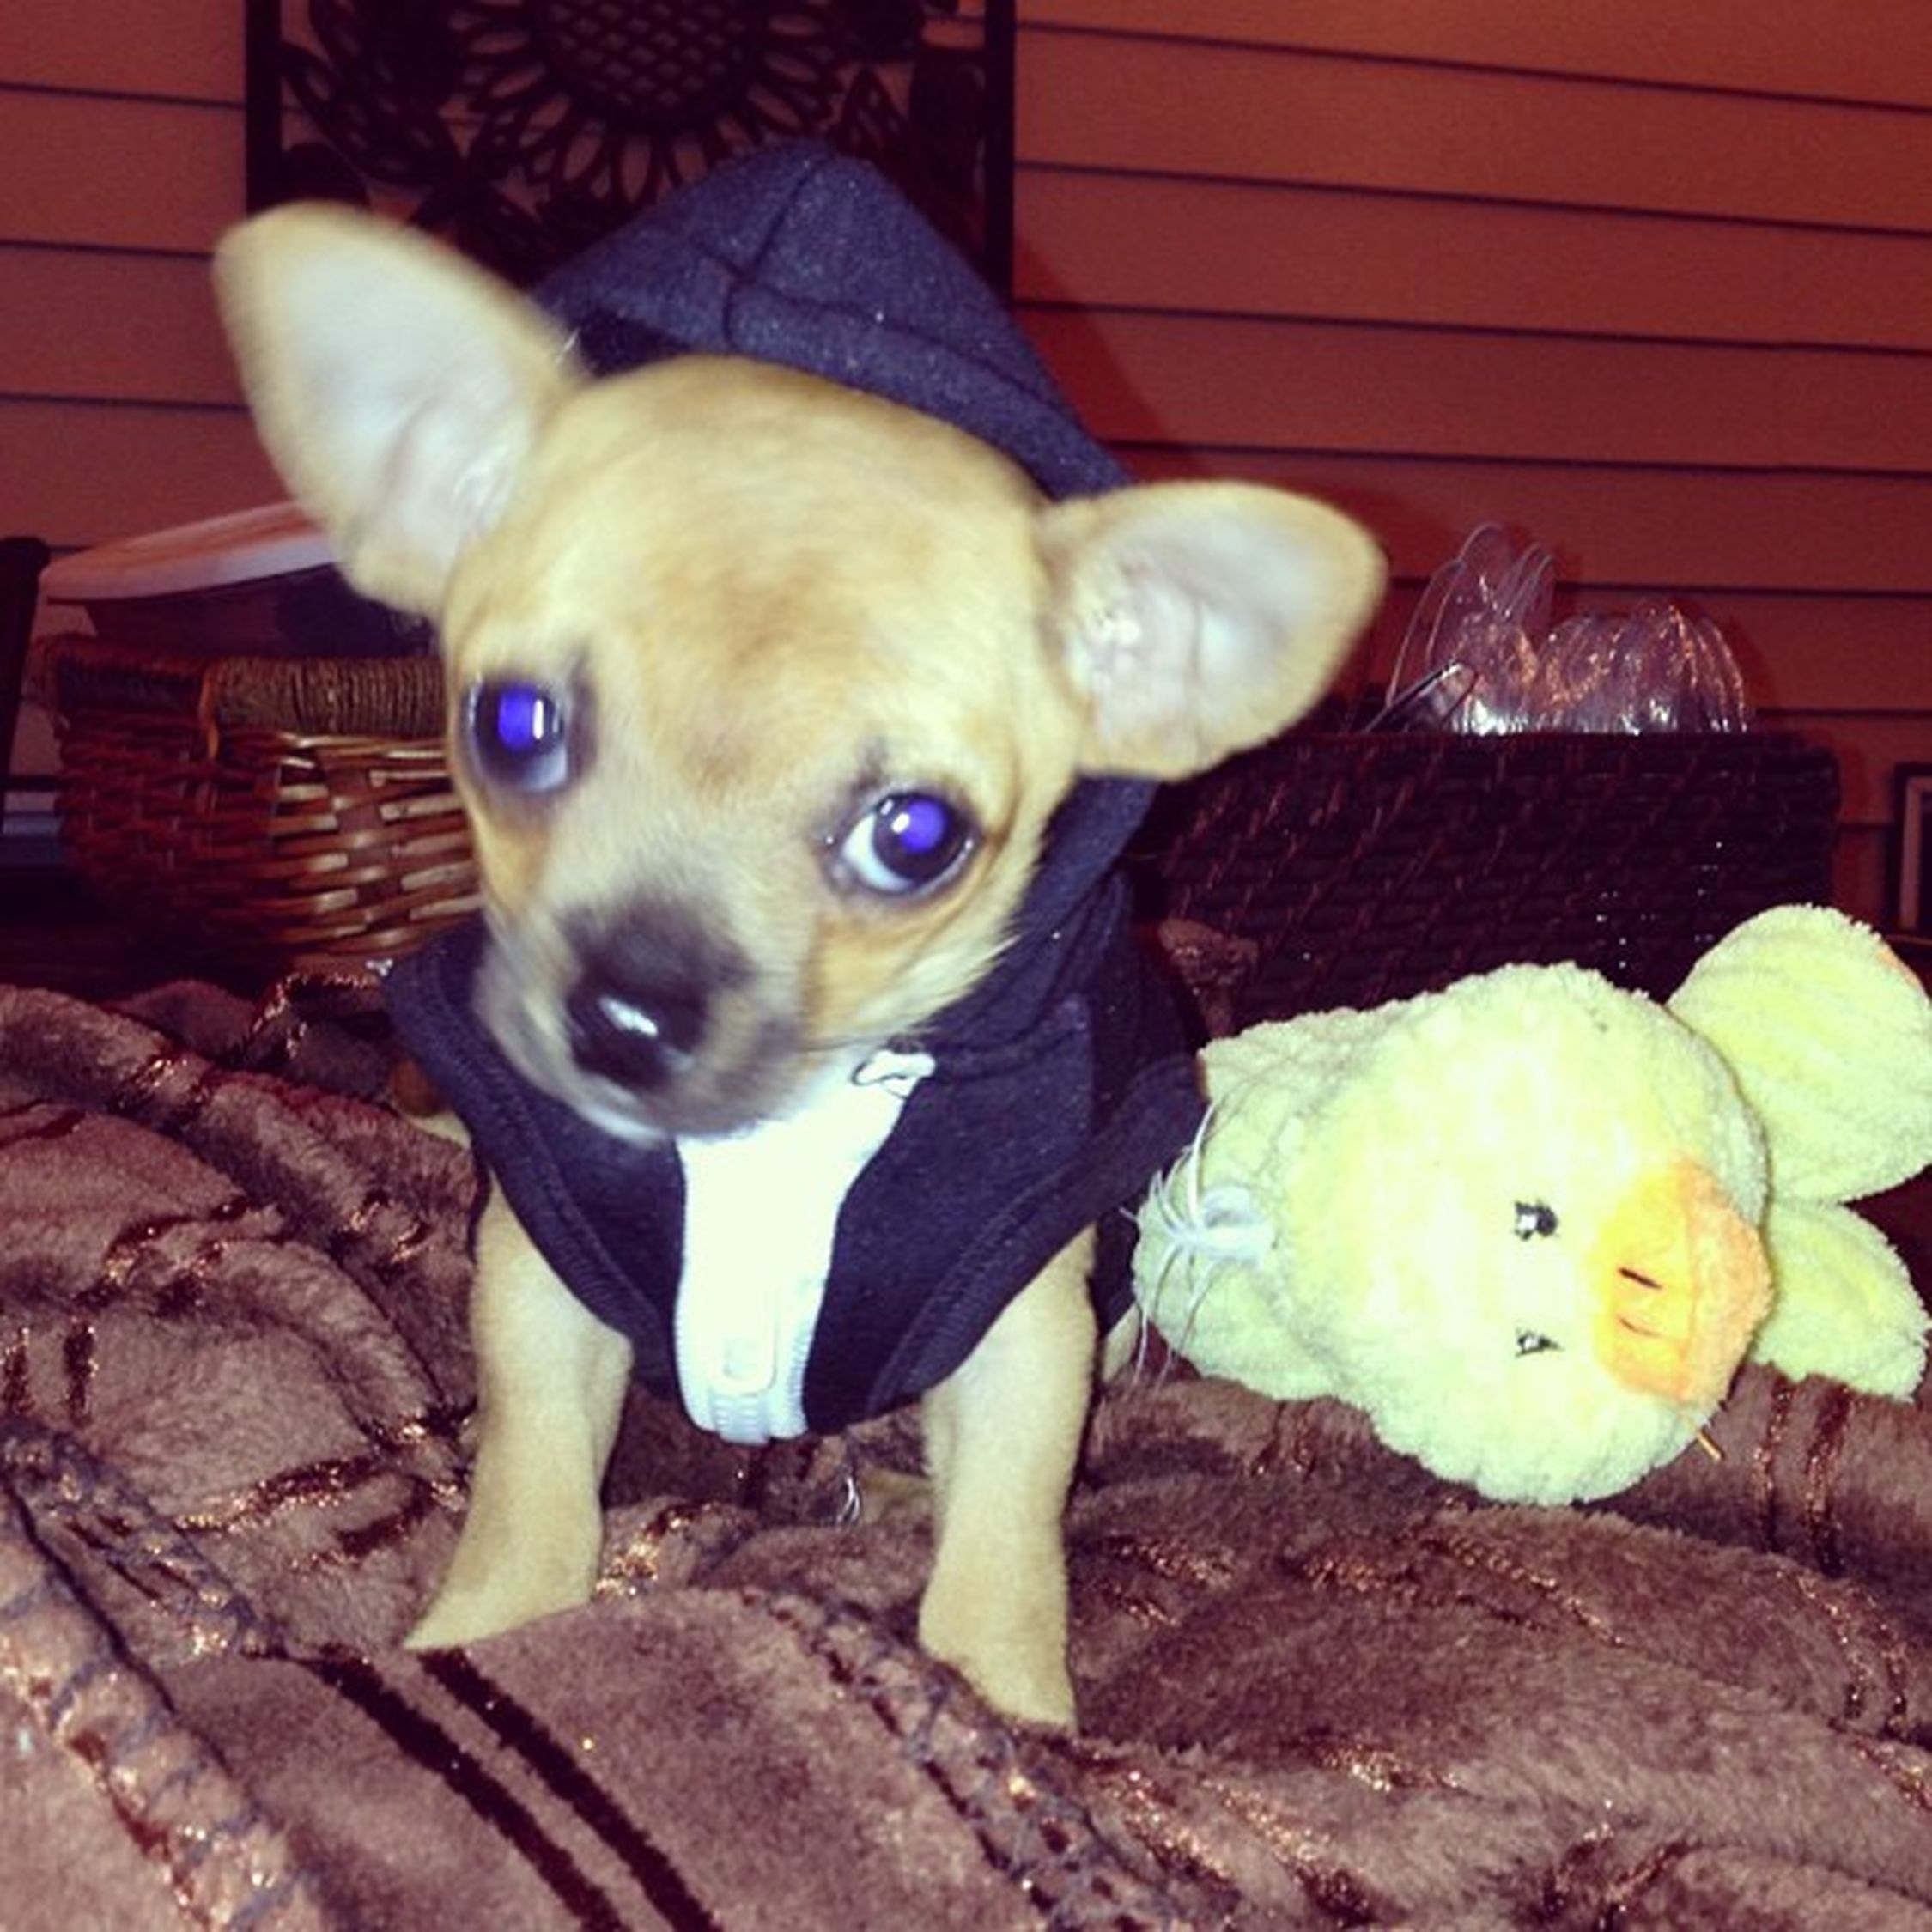 Don't mess with me papichulo Chiuaha Yoquierotacobell Dontmesswiththeduck Puppypicoverload